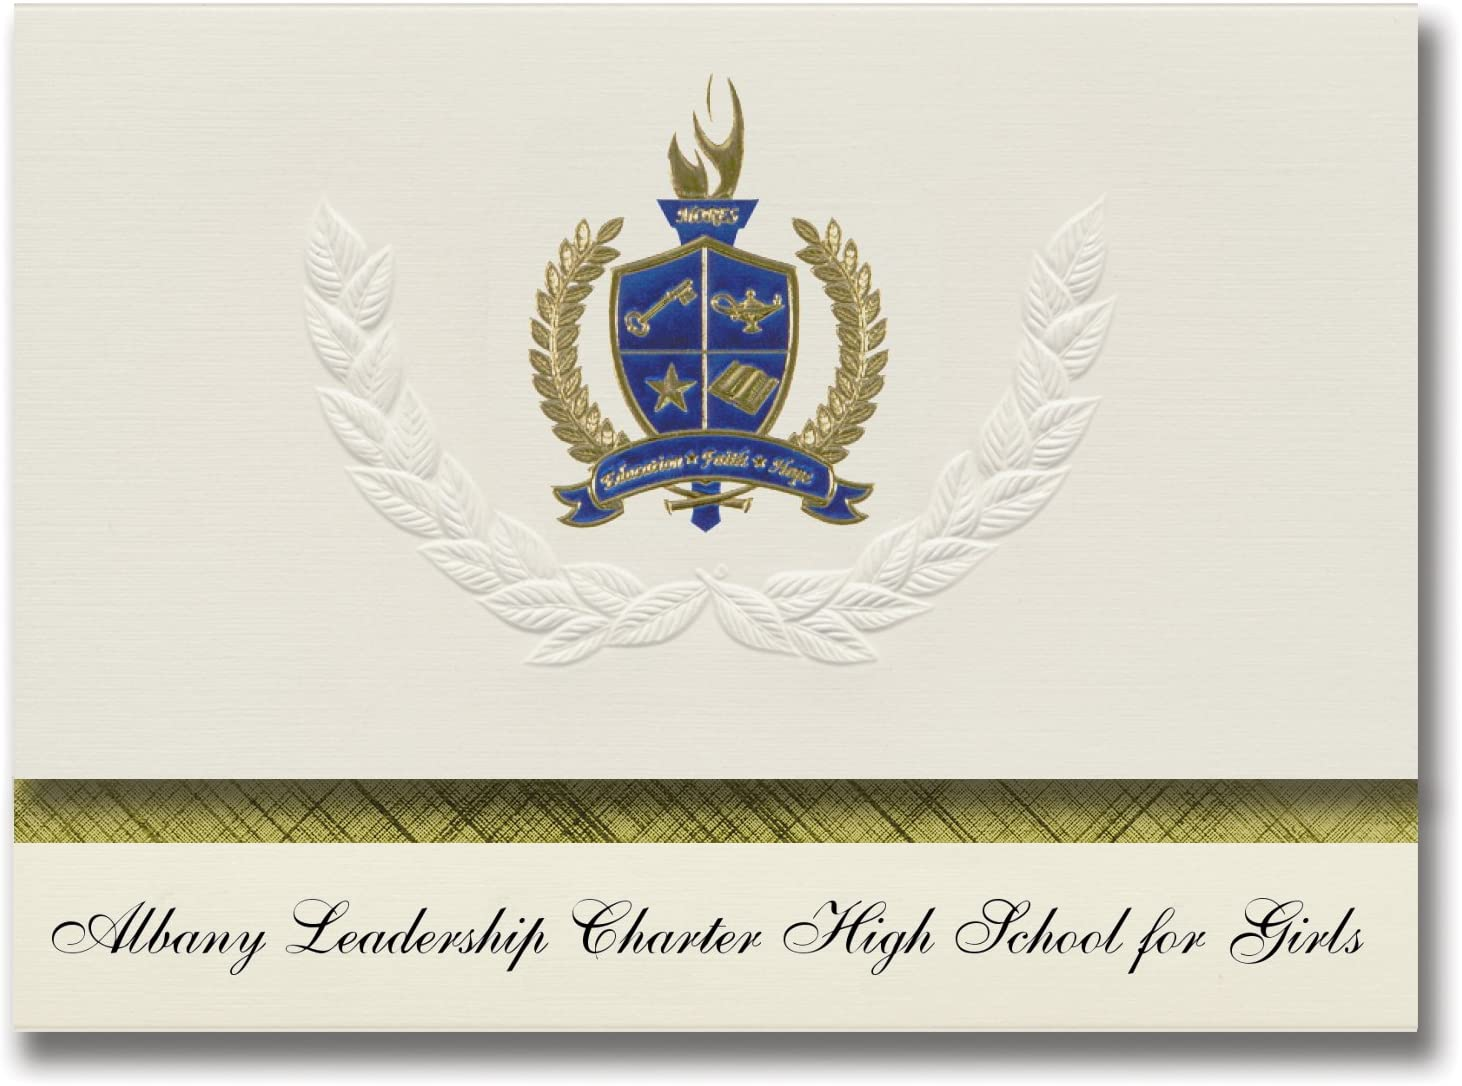 Signature Announcements Albany Leadership Charter High School for Girls (Albany, NY) Graduation Announcements, Presidential Elite Pack 25 w/Gold & Blue Foil seal